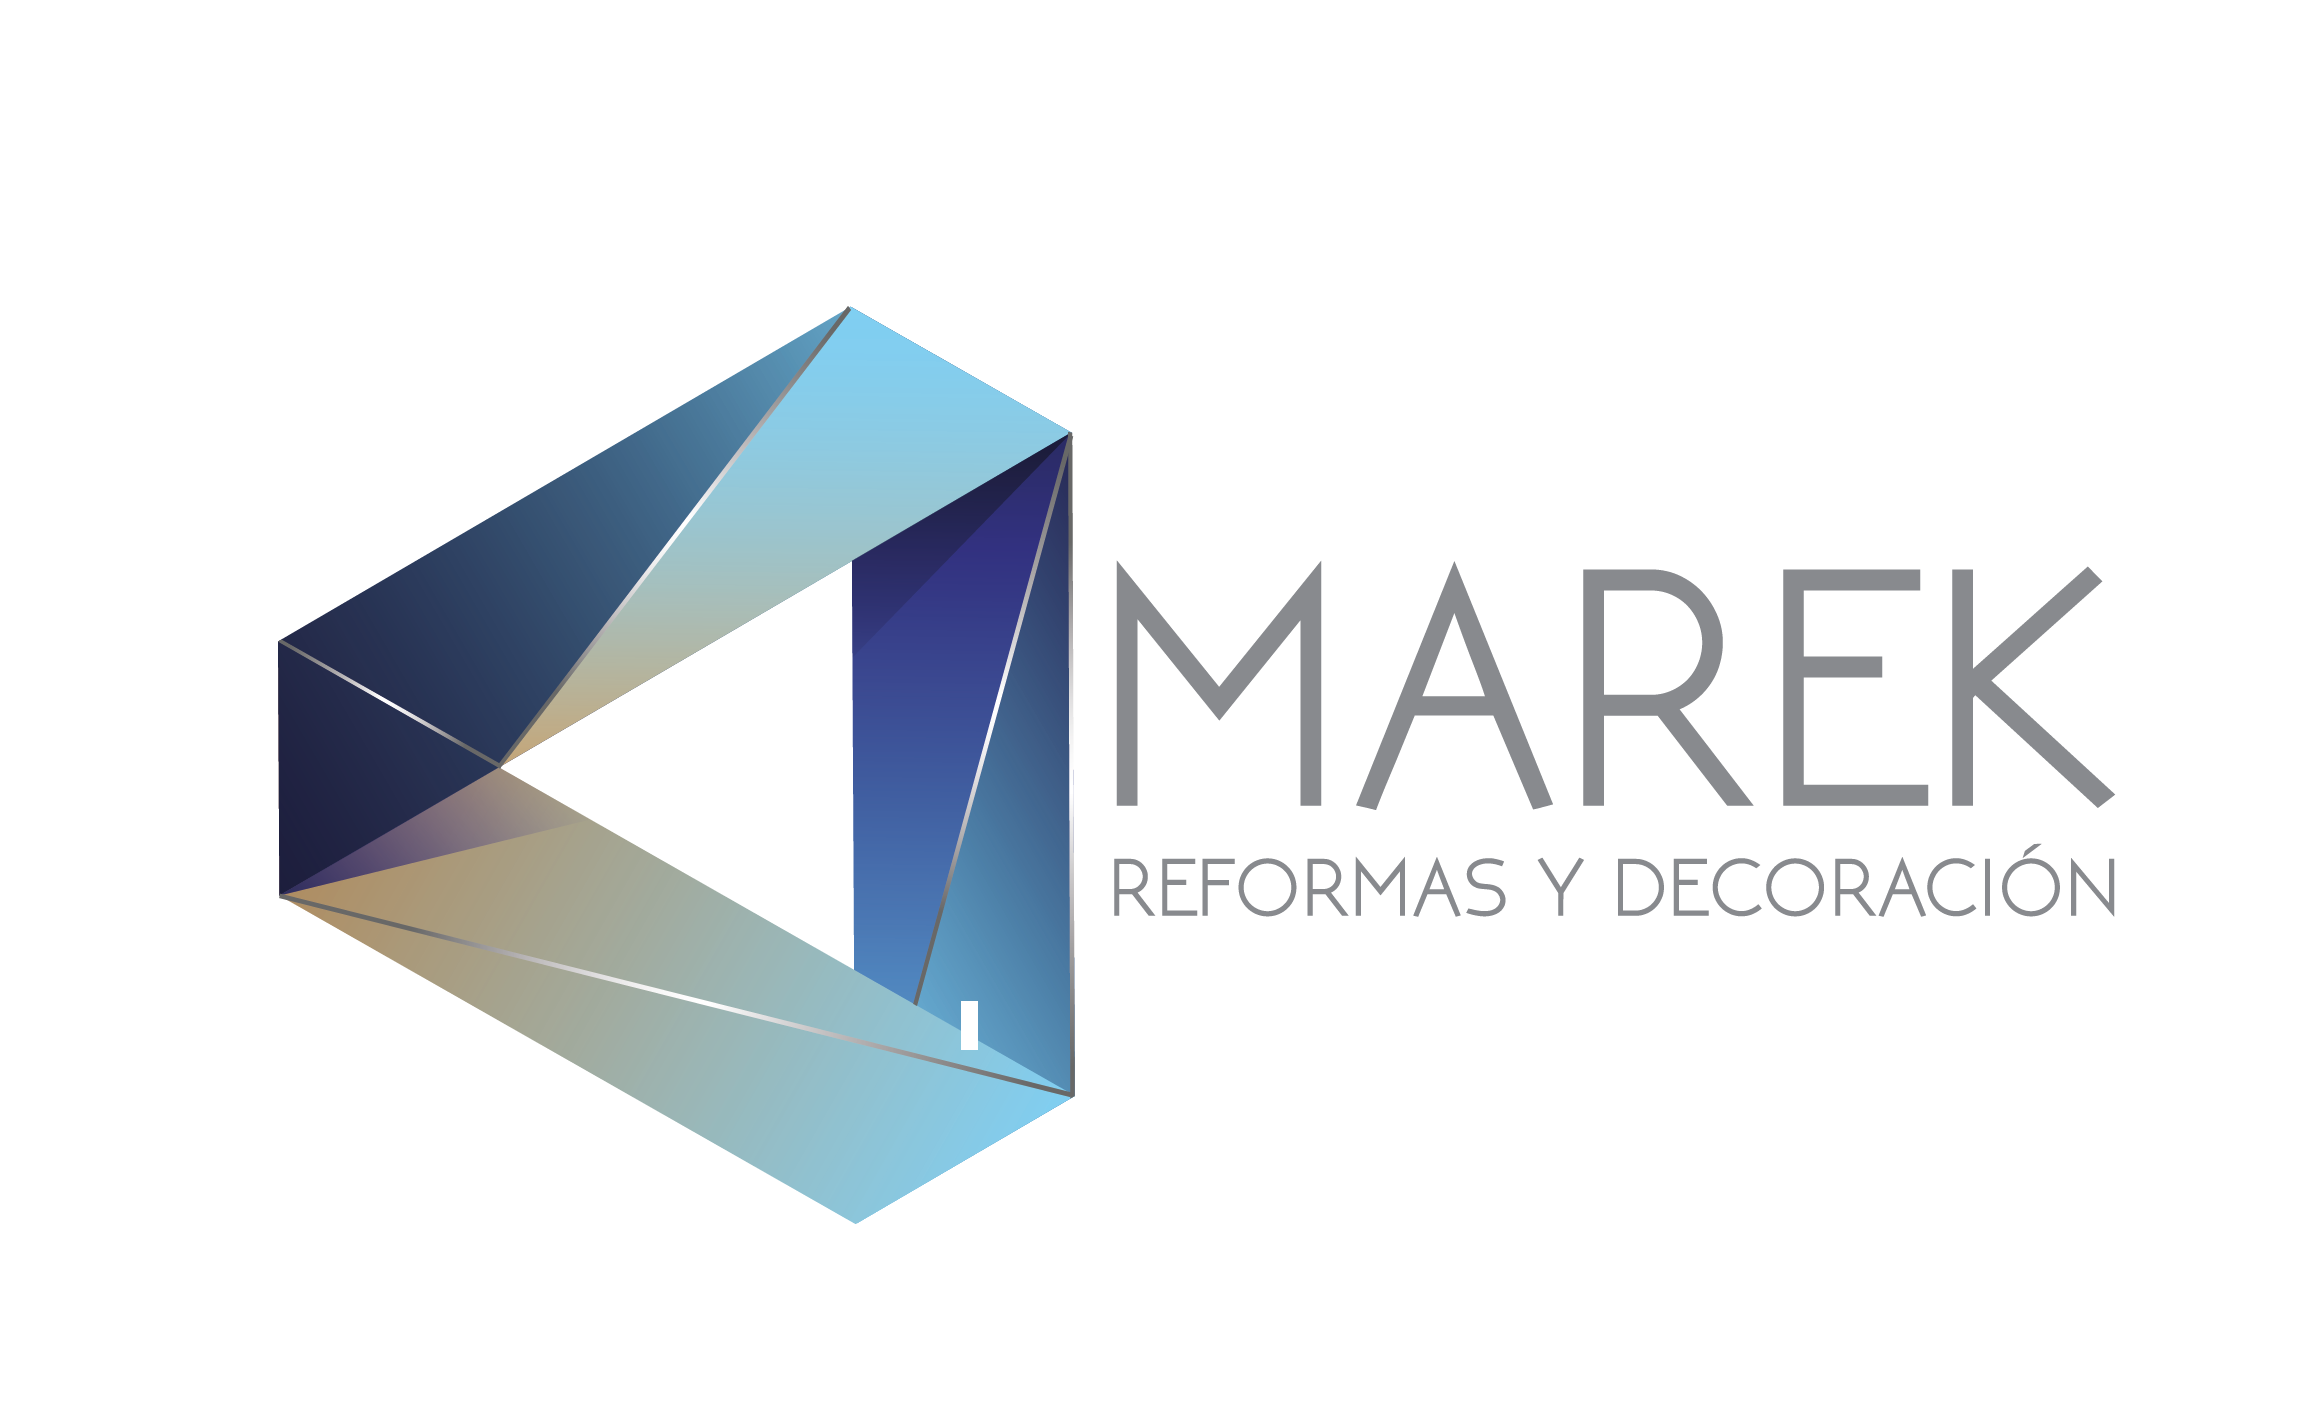 Reformas y Decoraciones Marek HAS